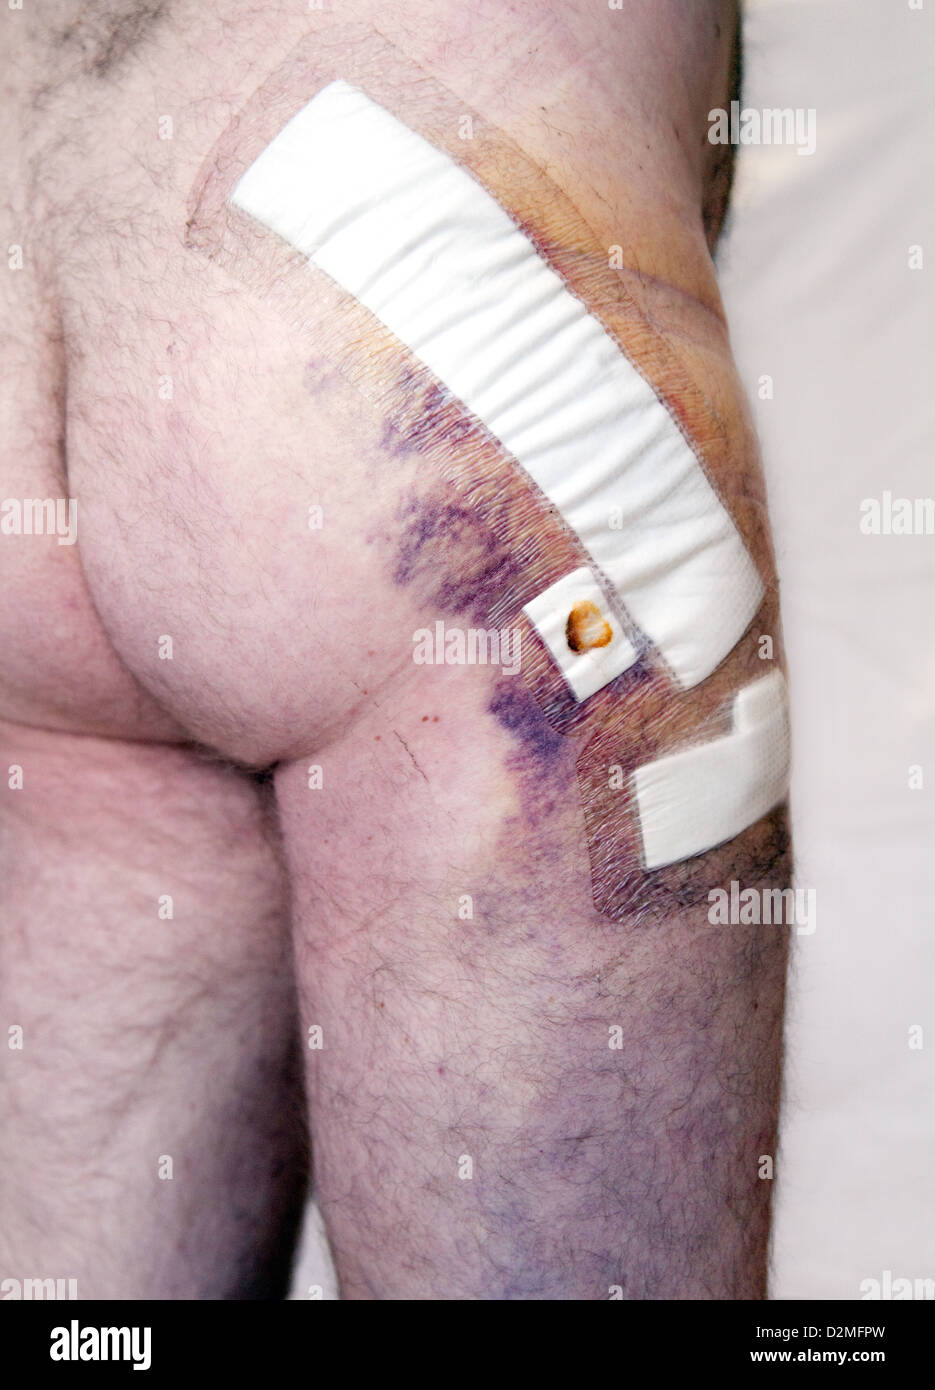 The bruising and dressings 5 days after a total hip replacement operation in a middle aged man, UK - Stock Image